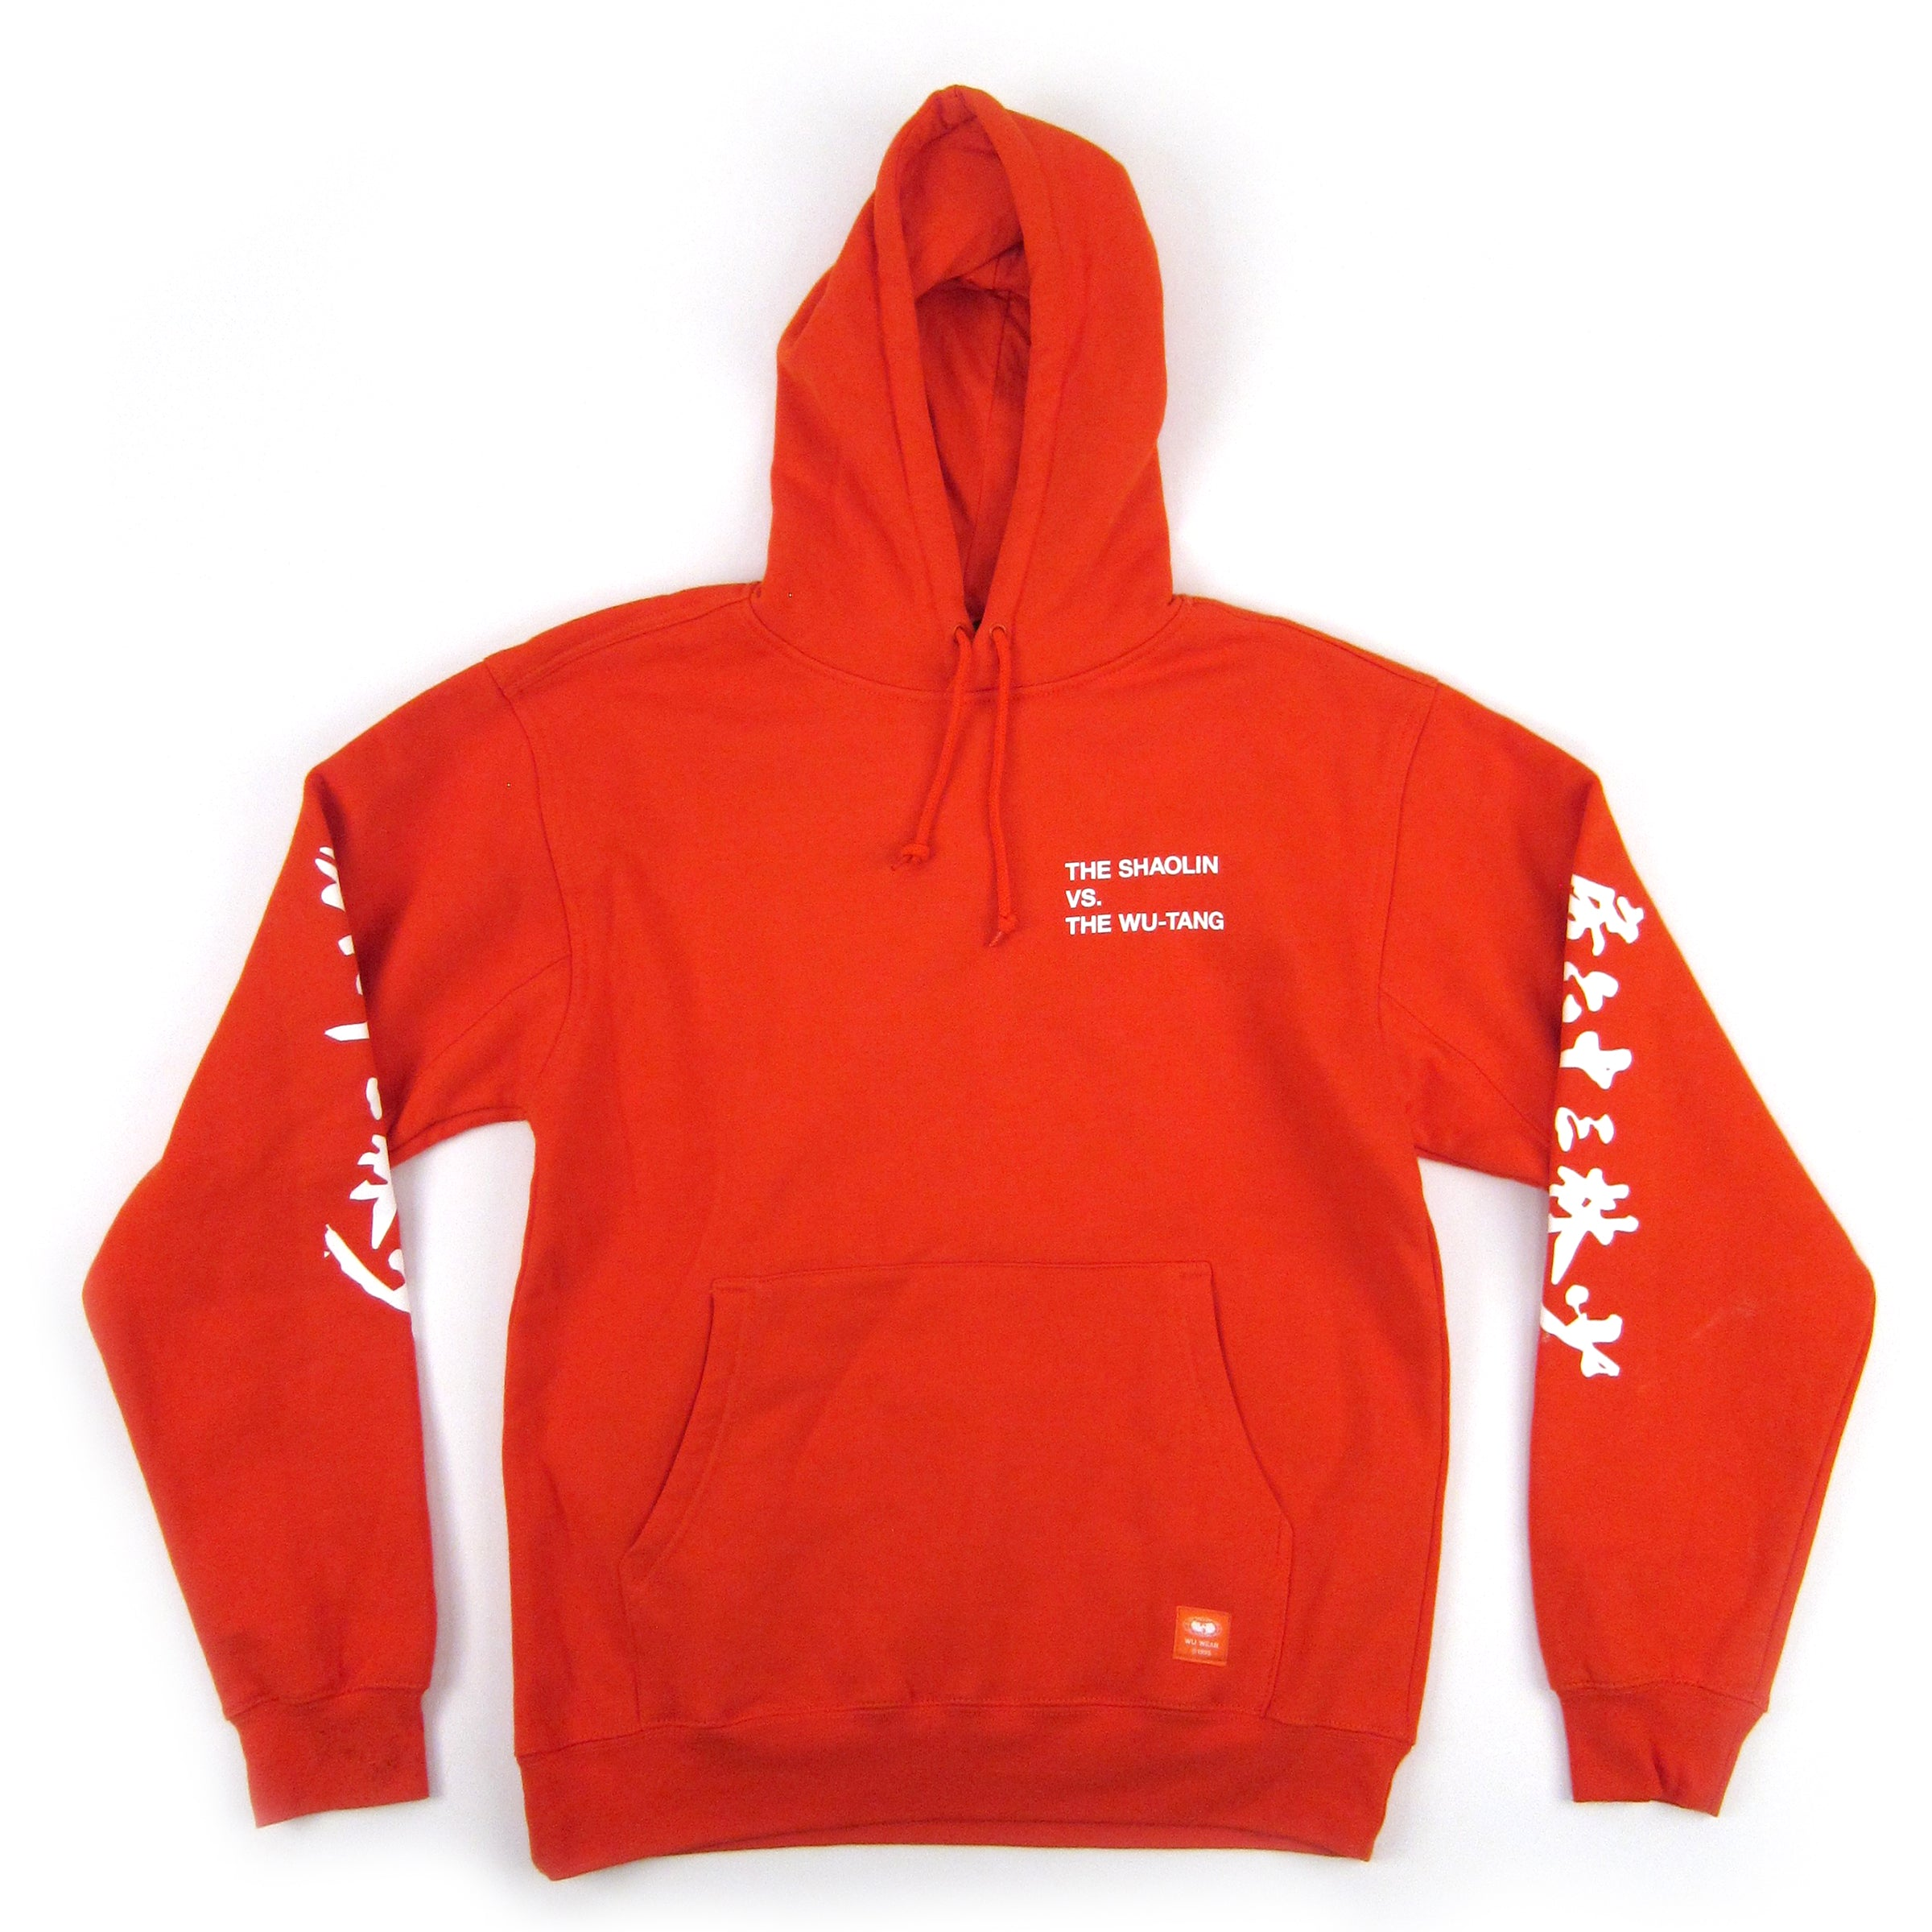 /'Save Me From Tomrrow/' Hoodie inspired by The Libertines /'What a Waster/' Hoody